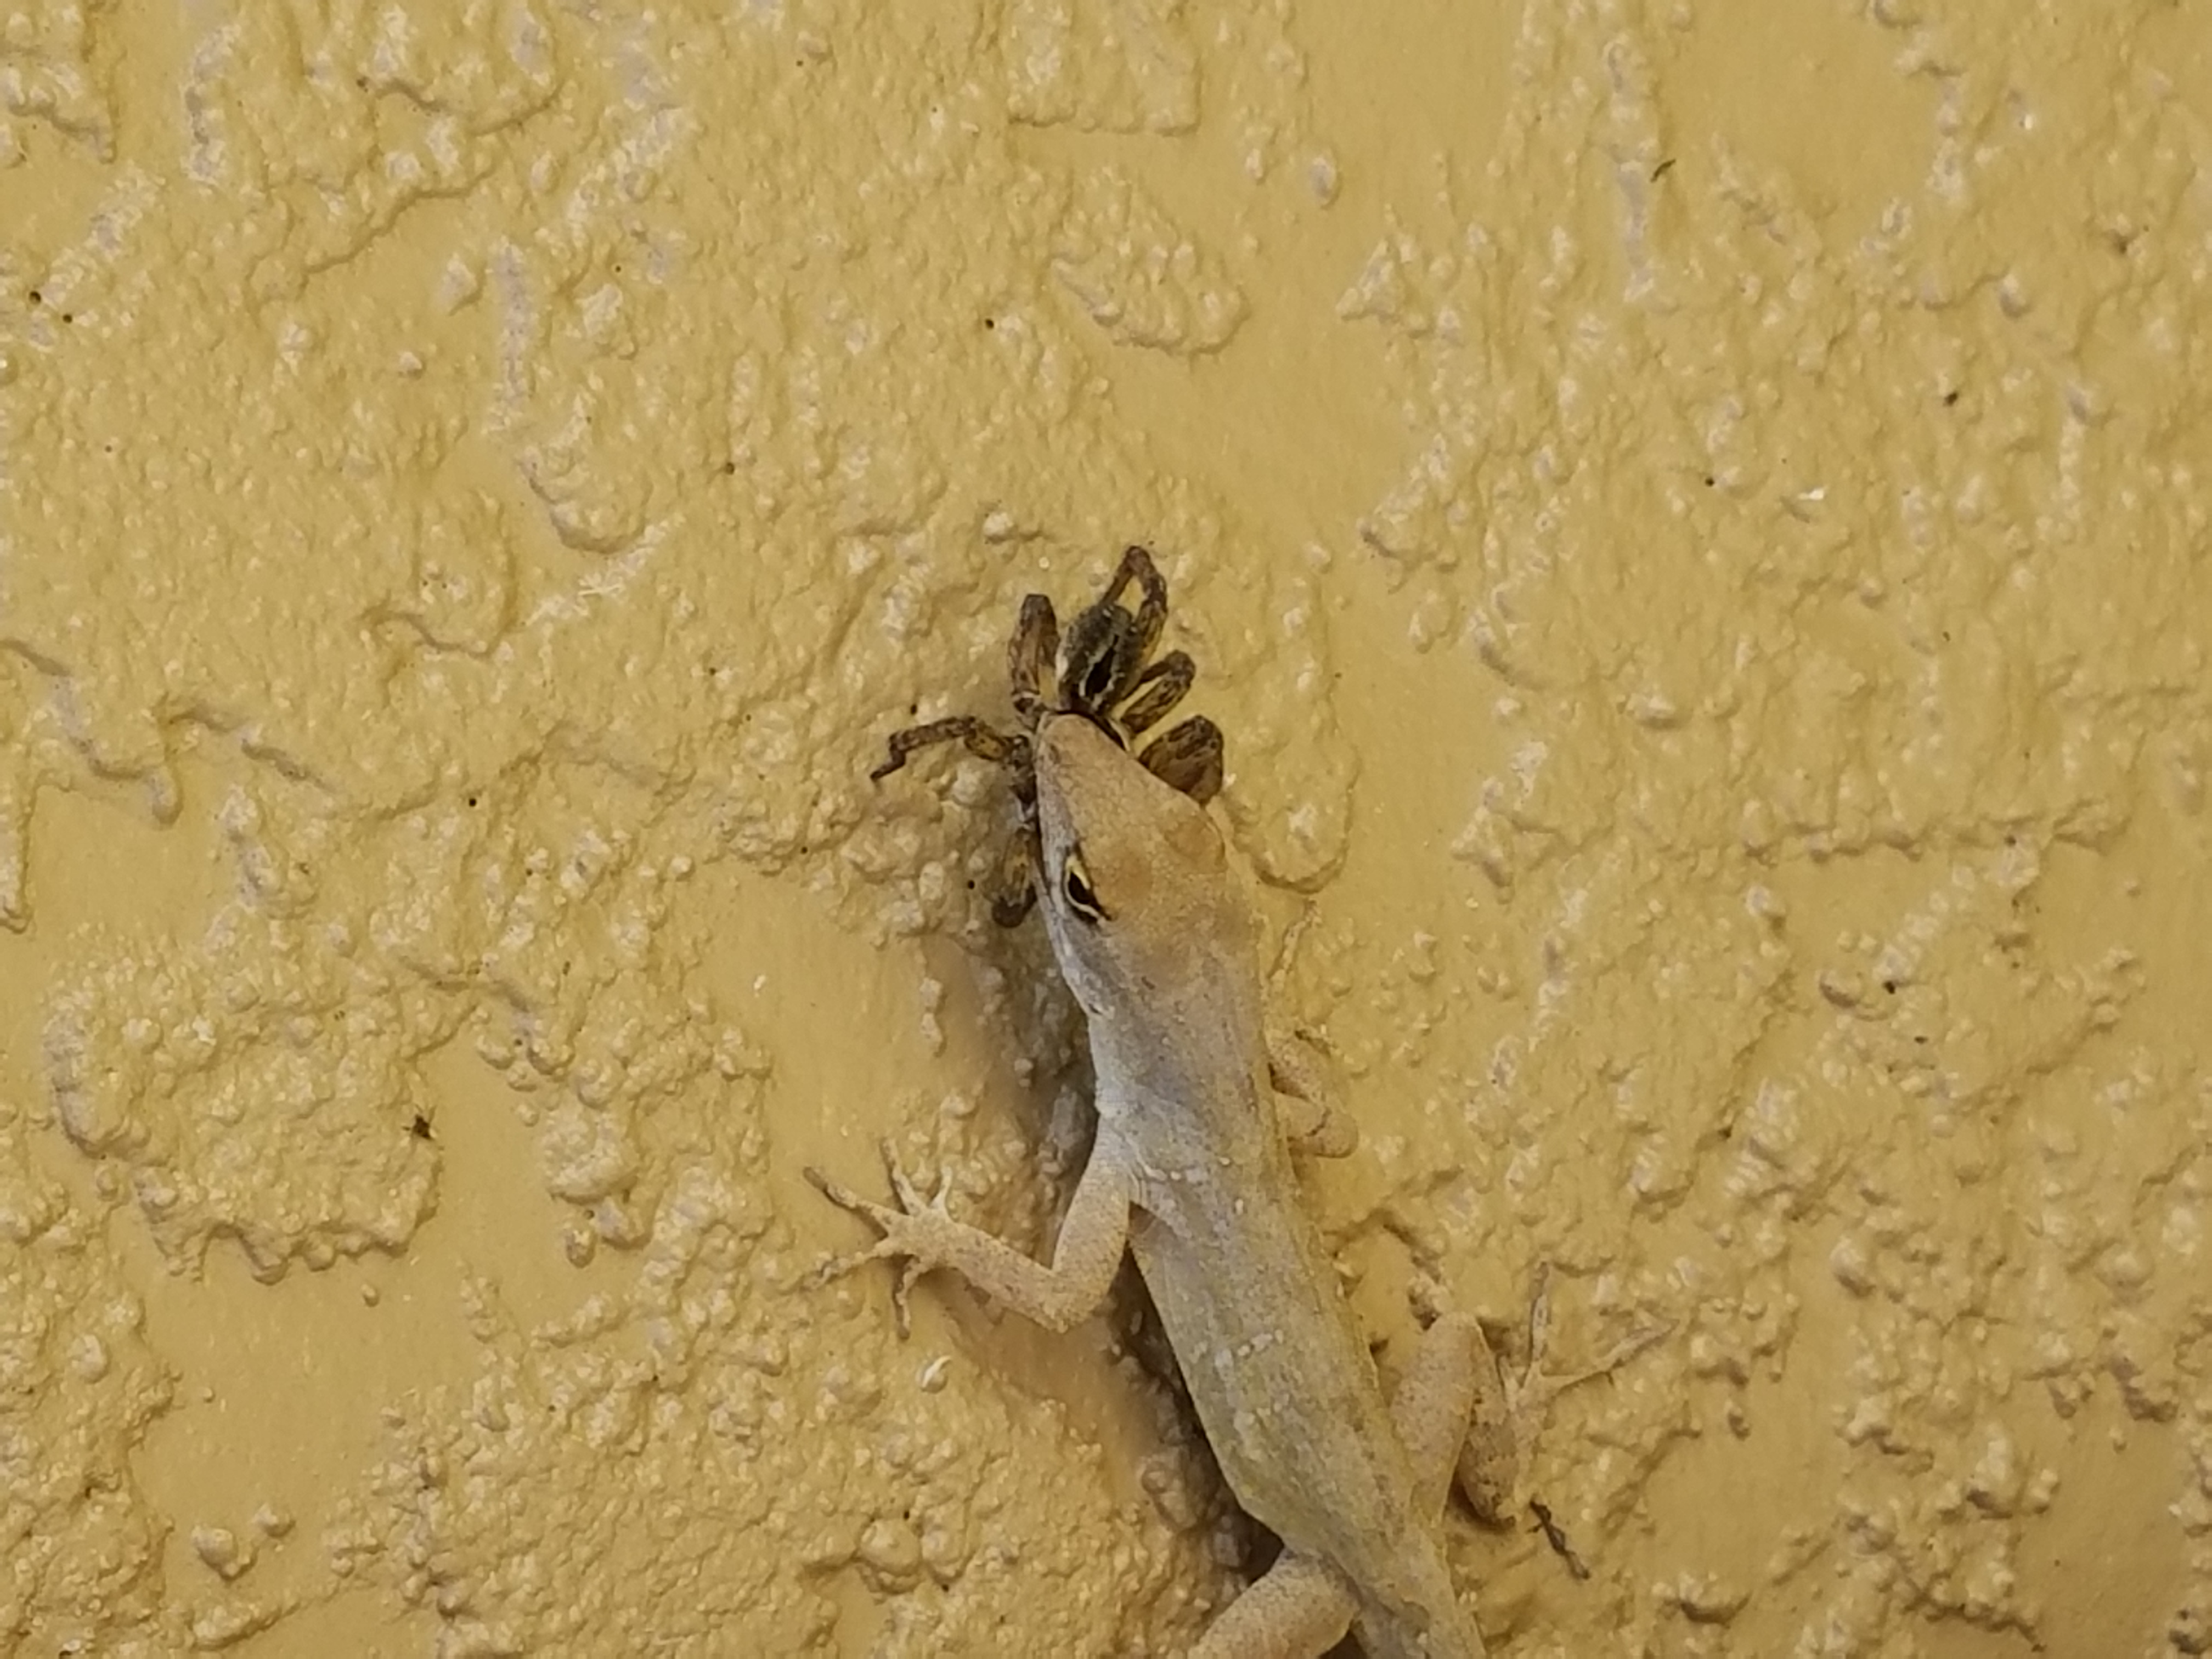 Florida Invasive Species The Brown Anole Invasion